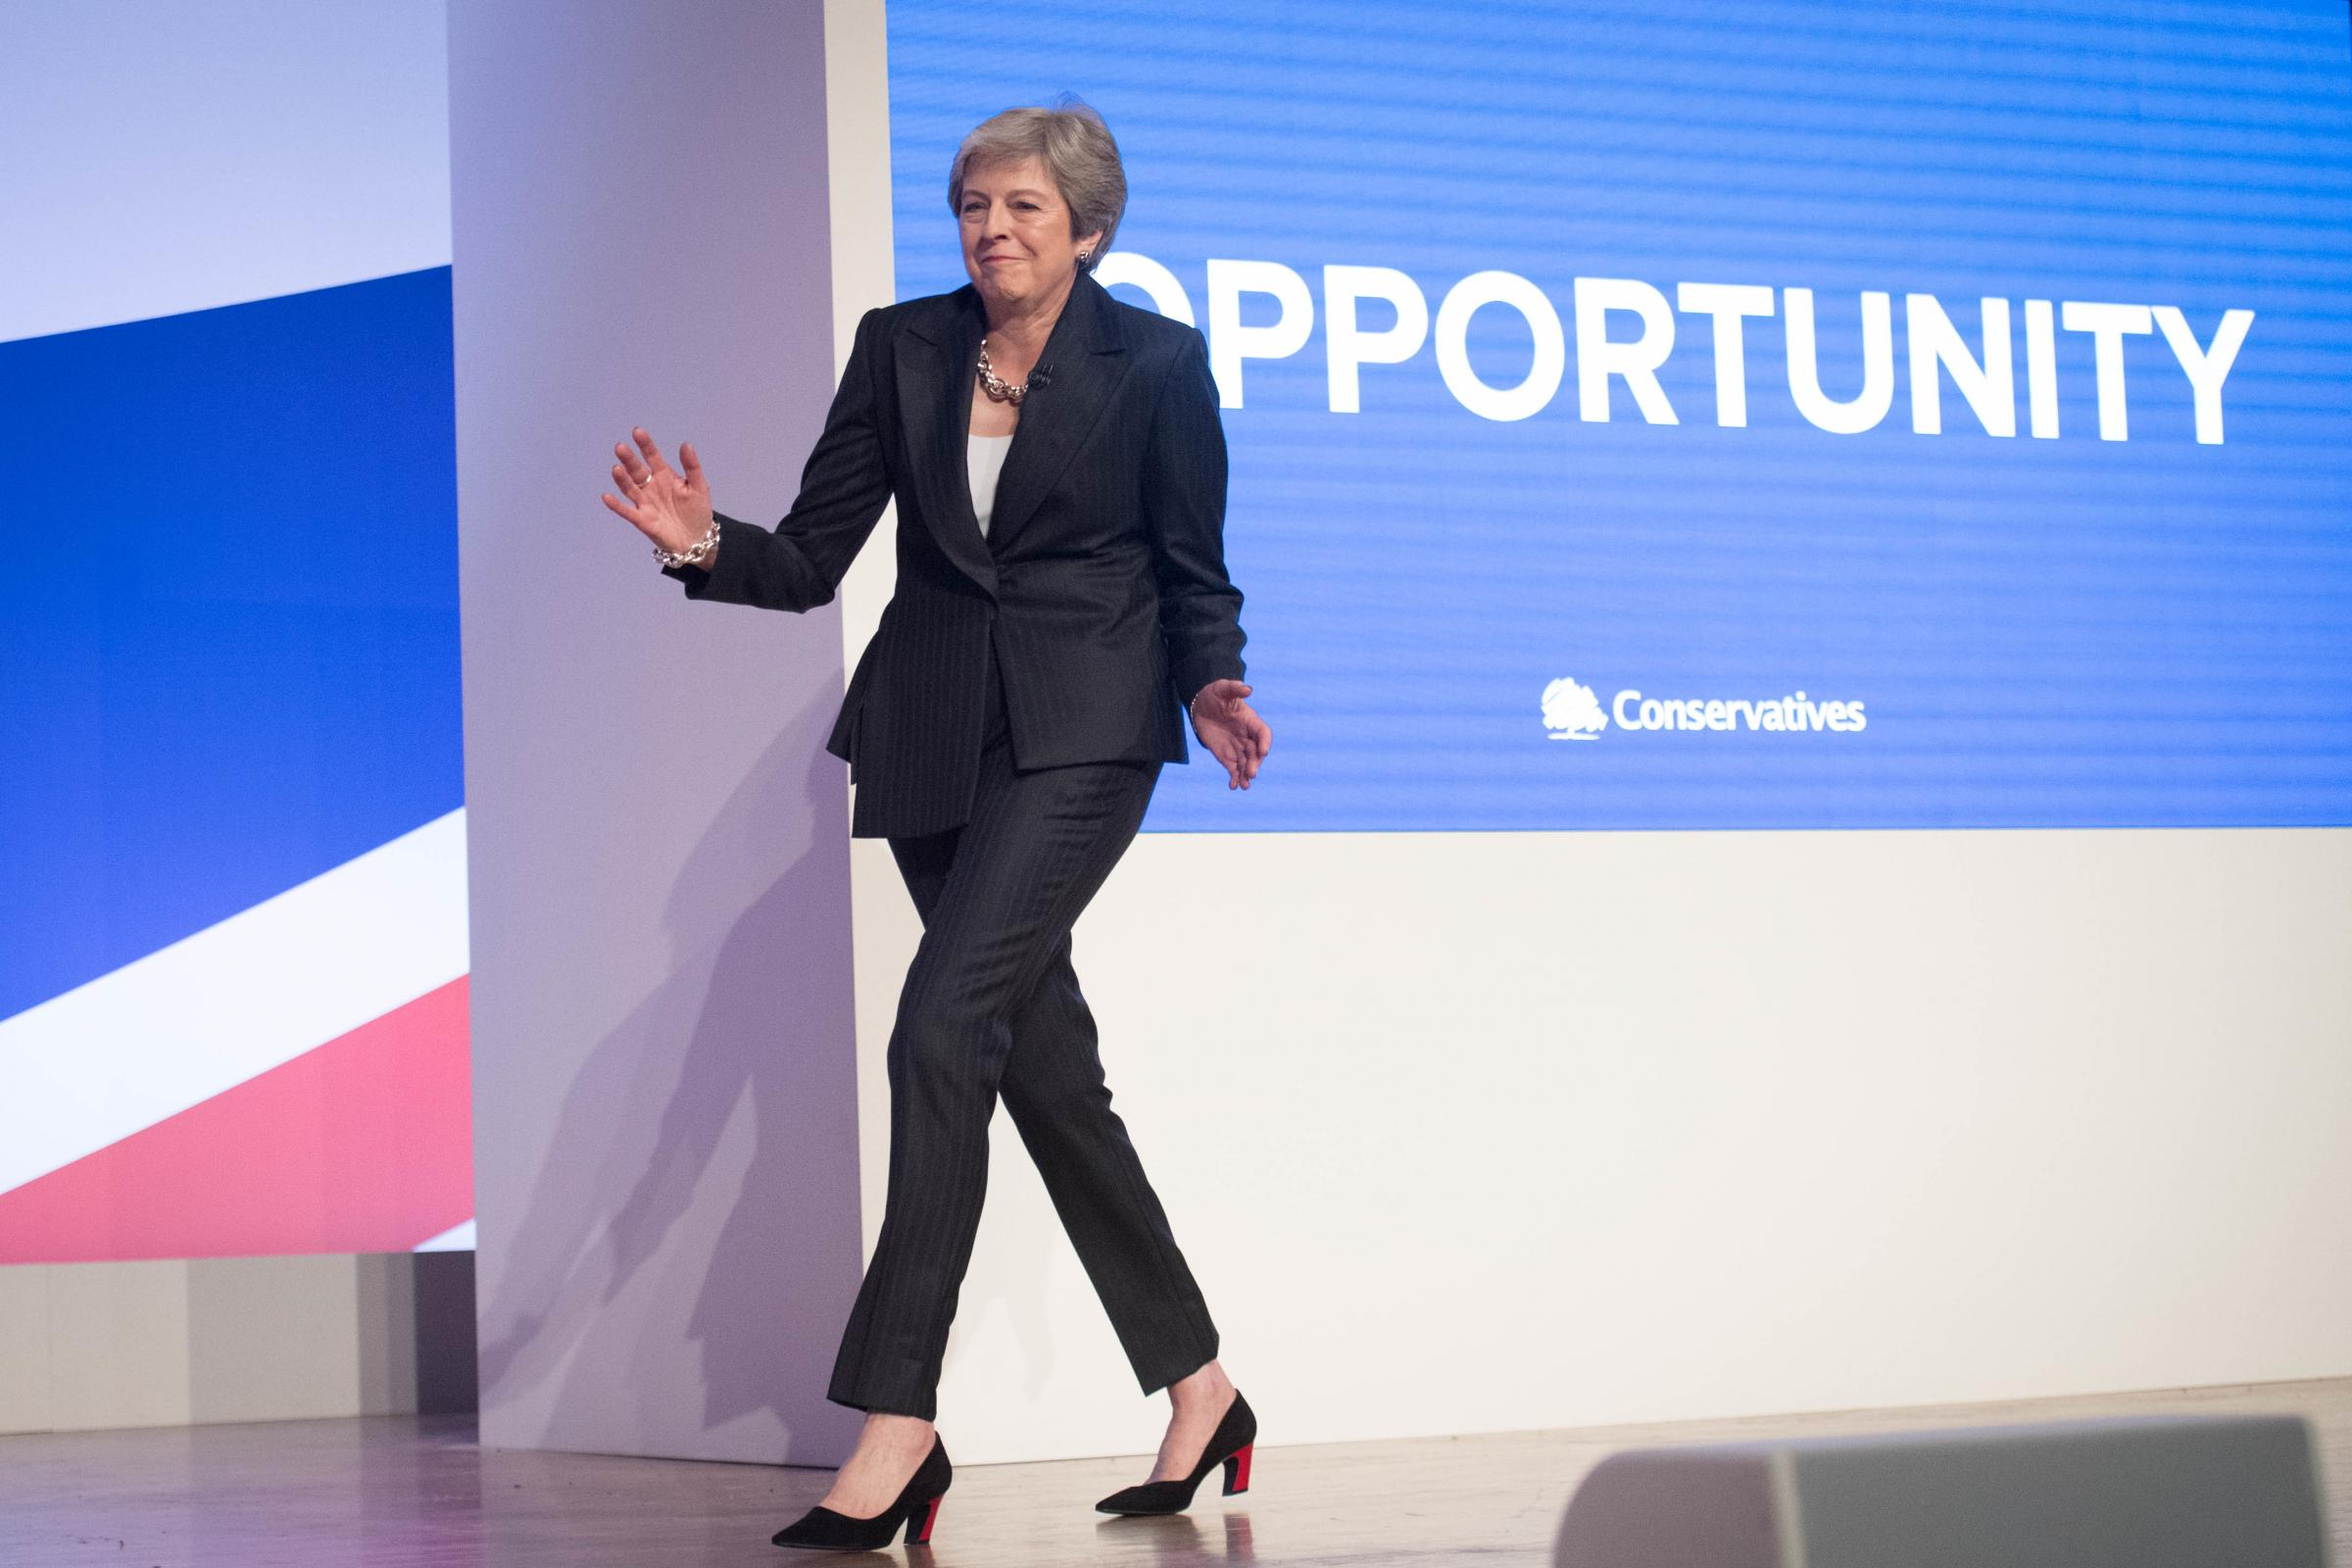 Prime Minister Theresa May dances as she arrives on stage to make her keynote speech at the Conservative Party annual conference at the International Convention Centre, Birmingham. Picture: Stefan Rousseau/PA Wire